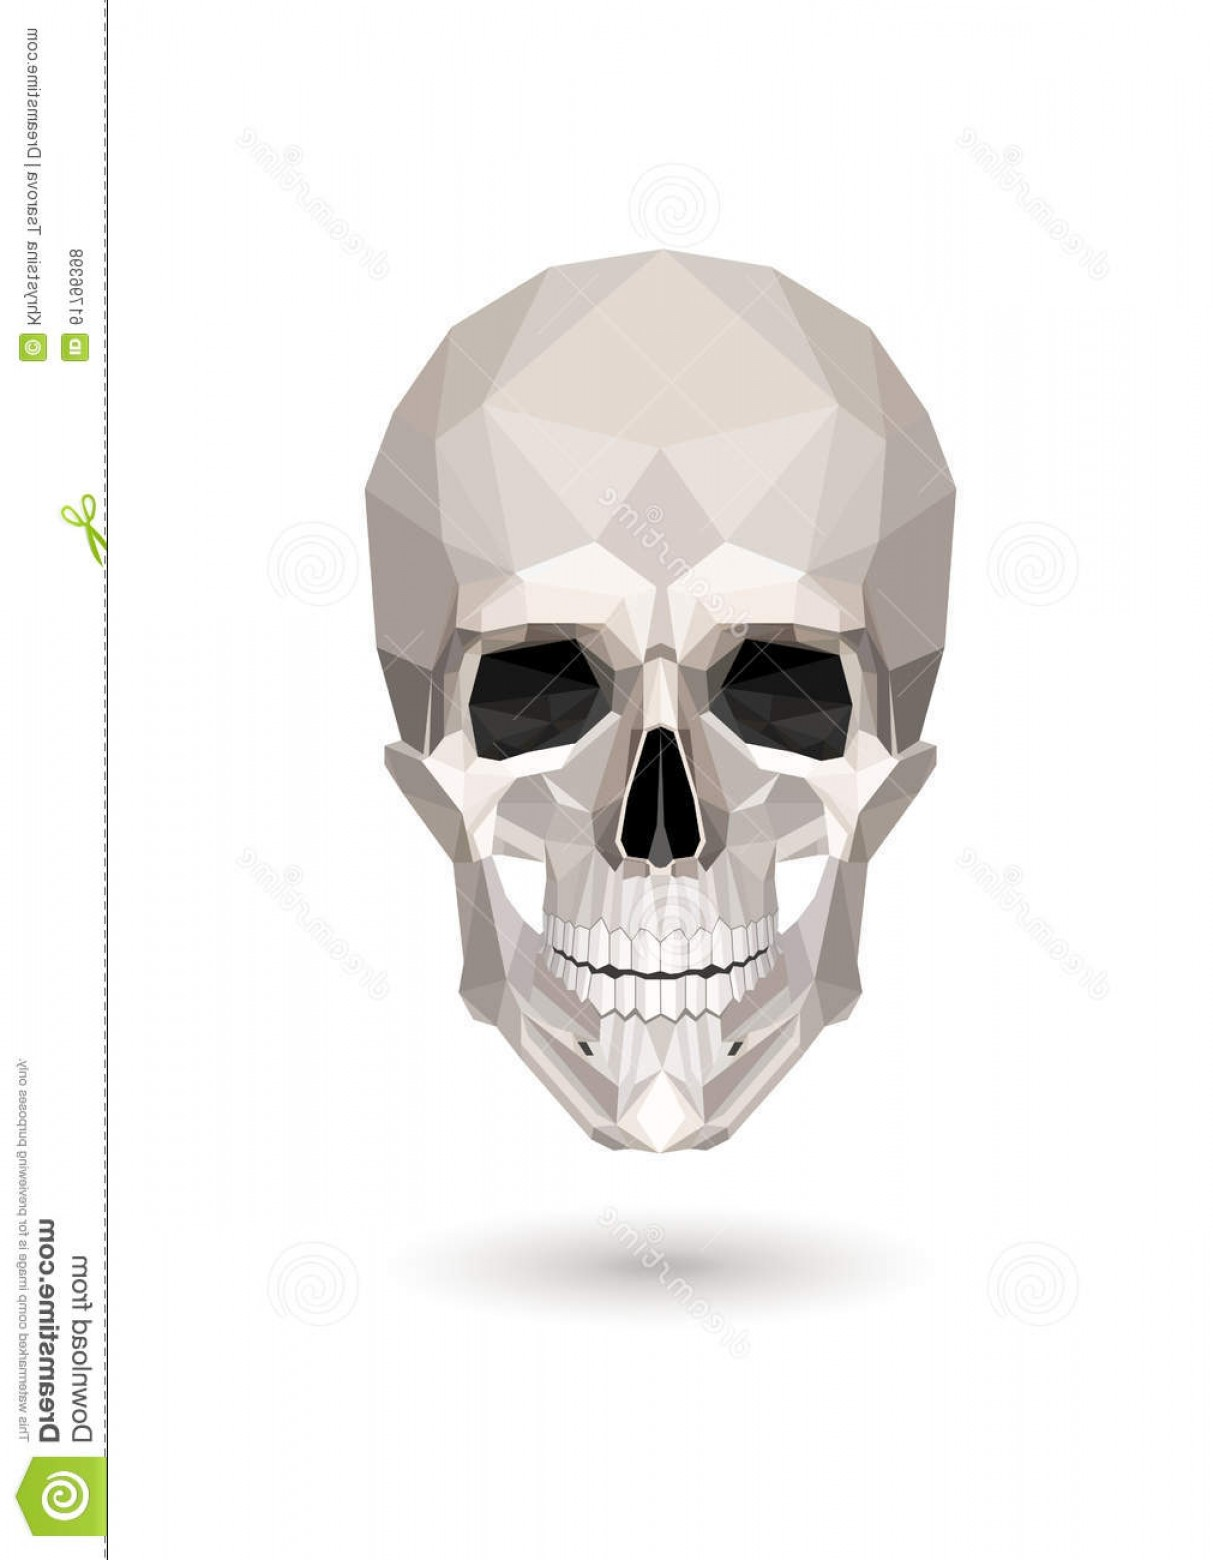 His And Hers Skulls Vector: Stock Illustration Low Poly Skull Vector White Background Image